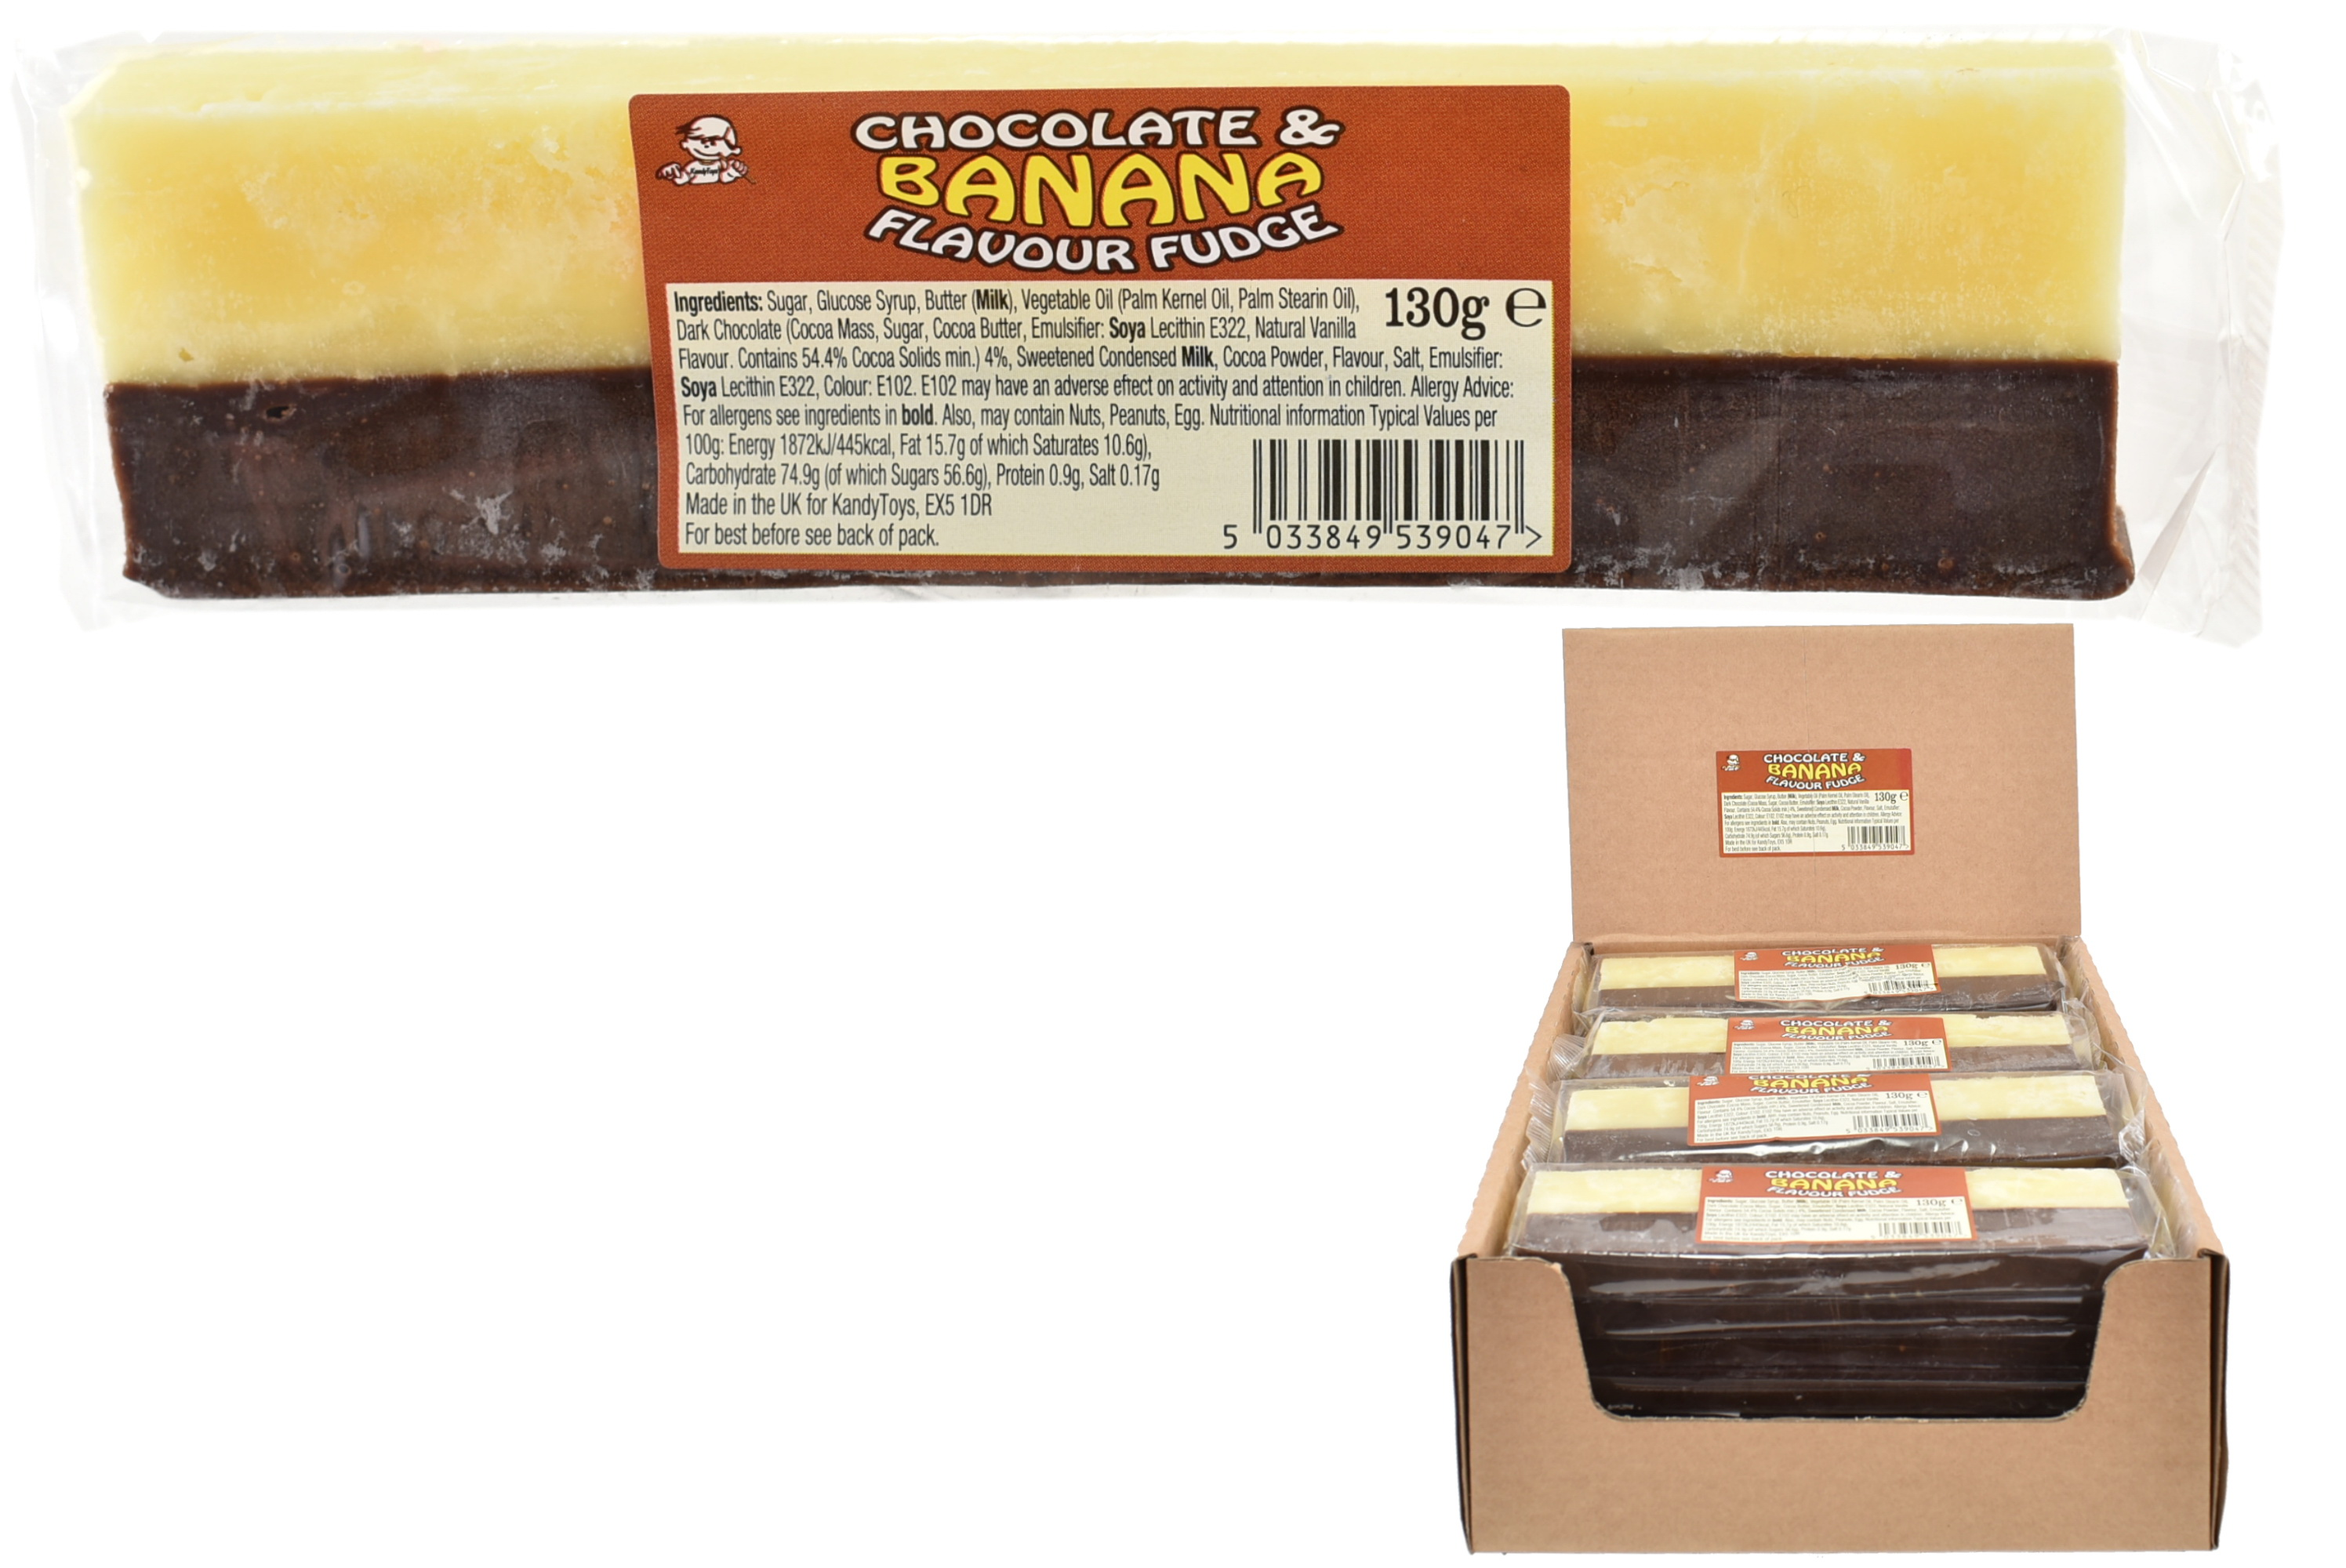 130g Chocolate & Banana Flavour Fudge Bar